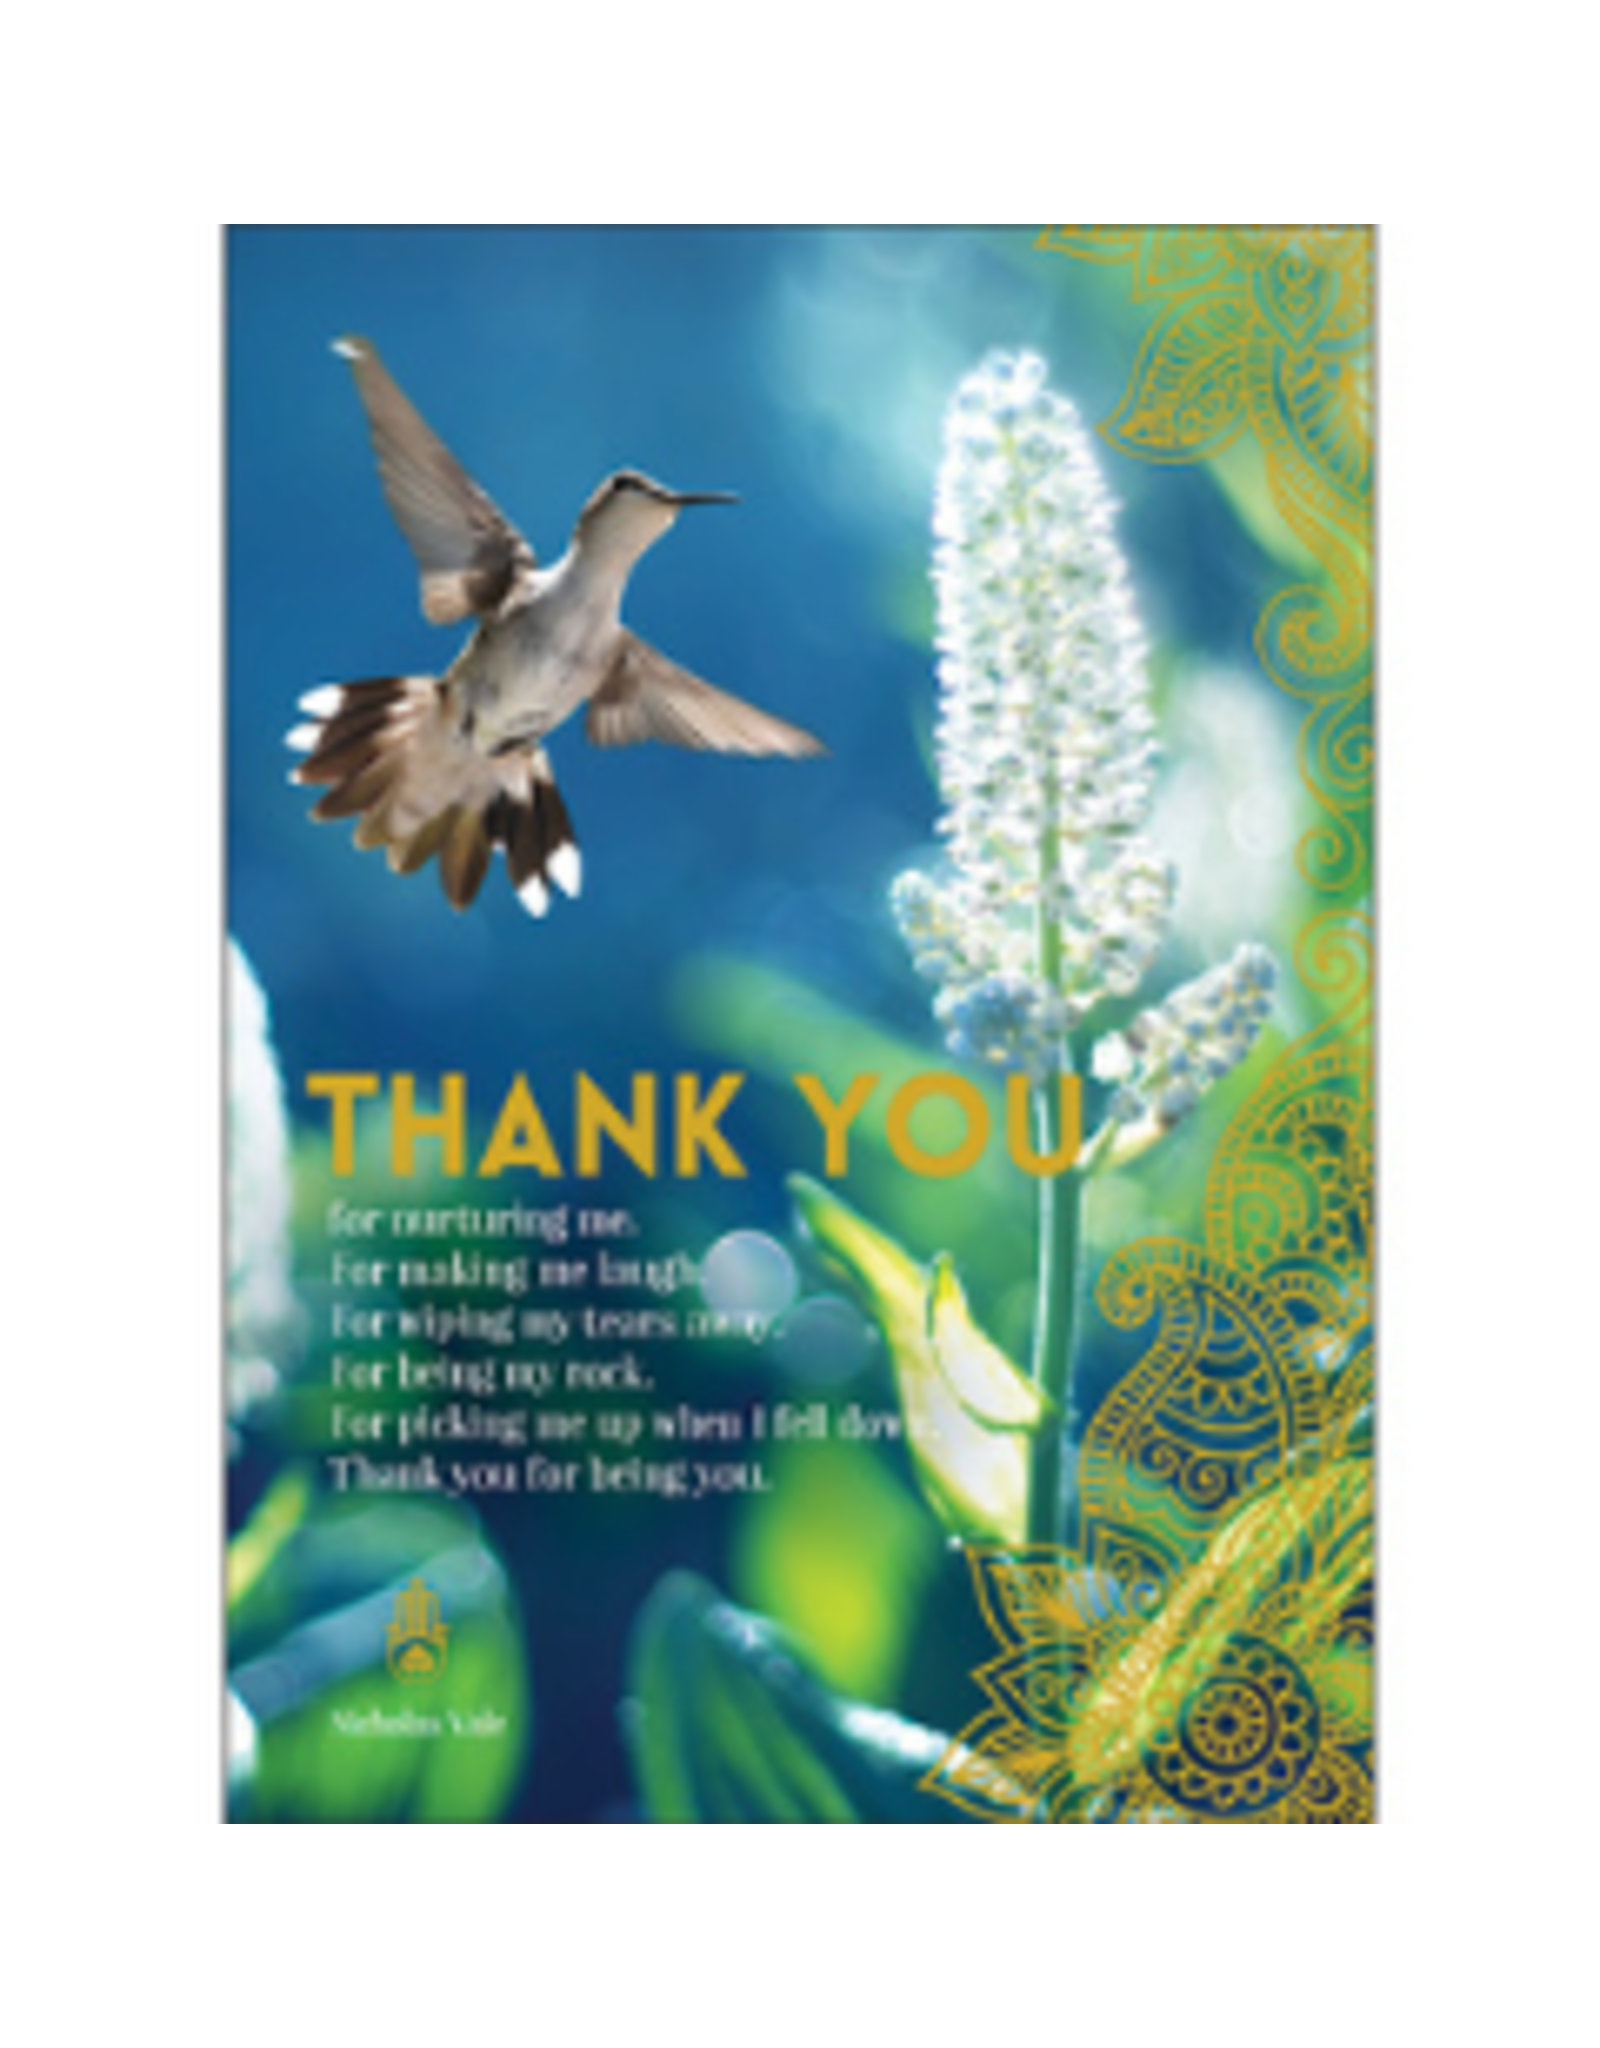 Affirmations Publishing House Greeting Card - Thank You